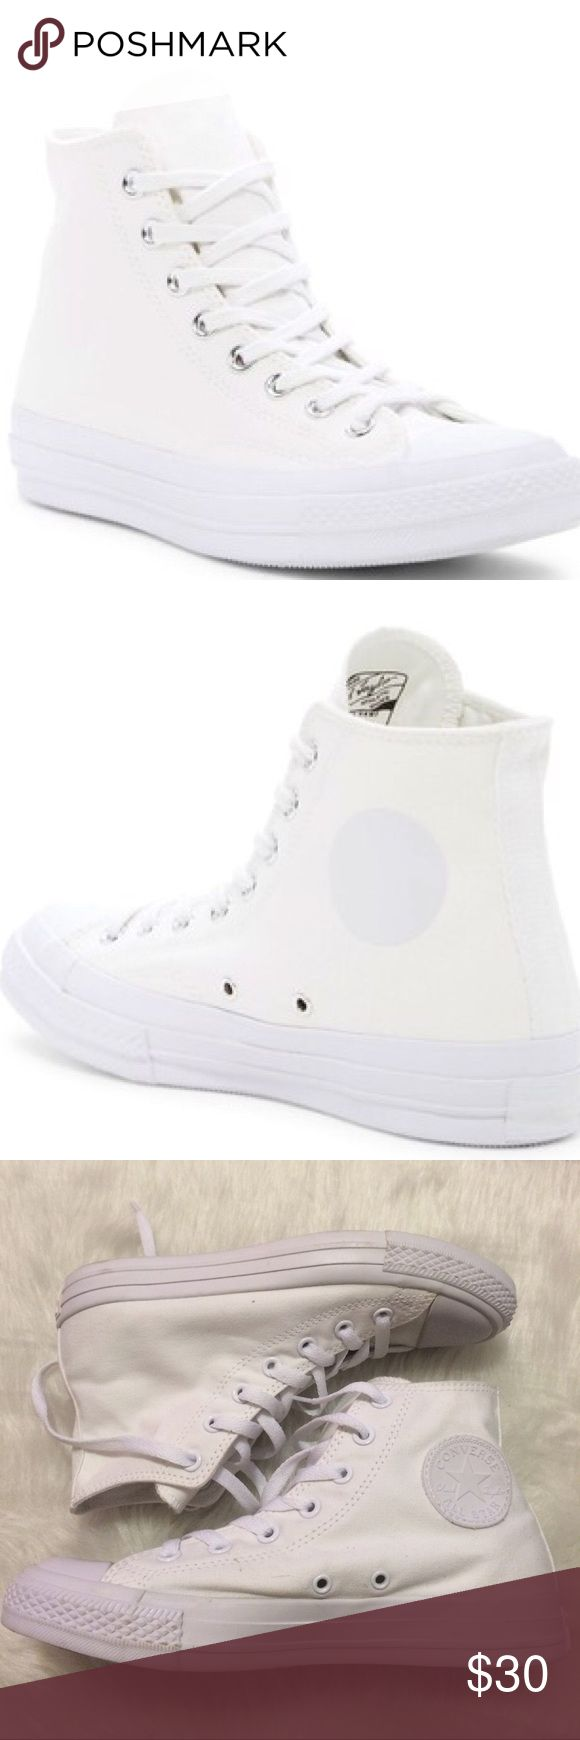 ??1 HOUR SALE! Converse Mens size 10 all white No box Converse Shoes  Sneakers